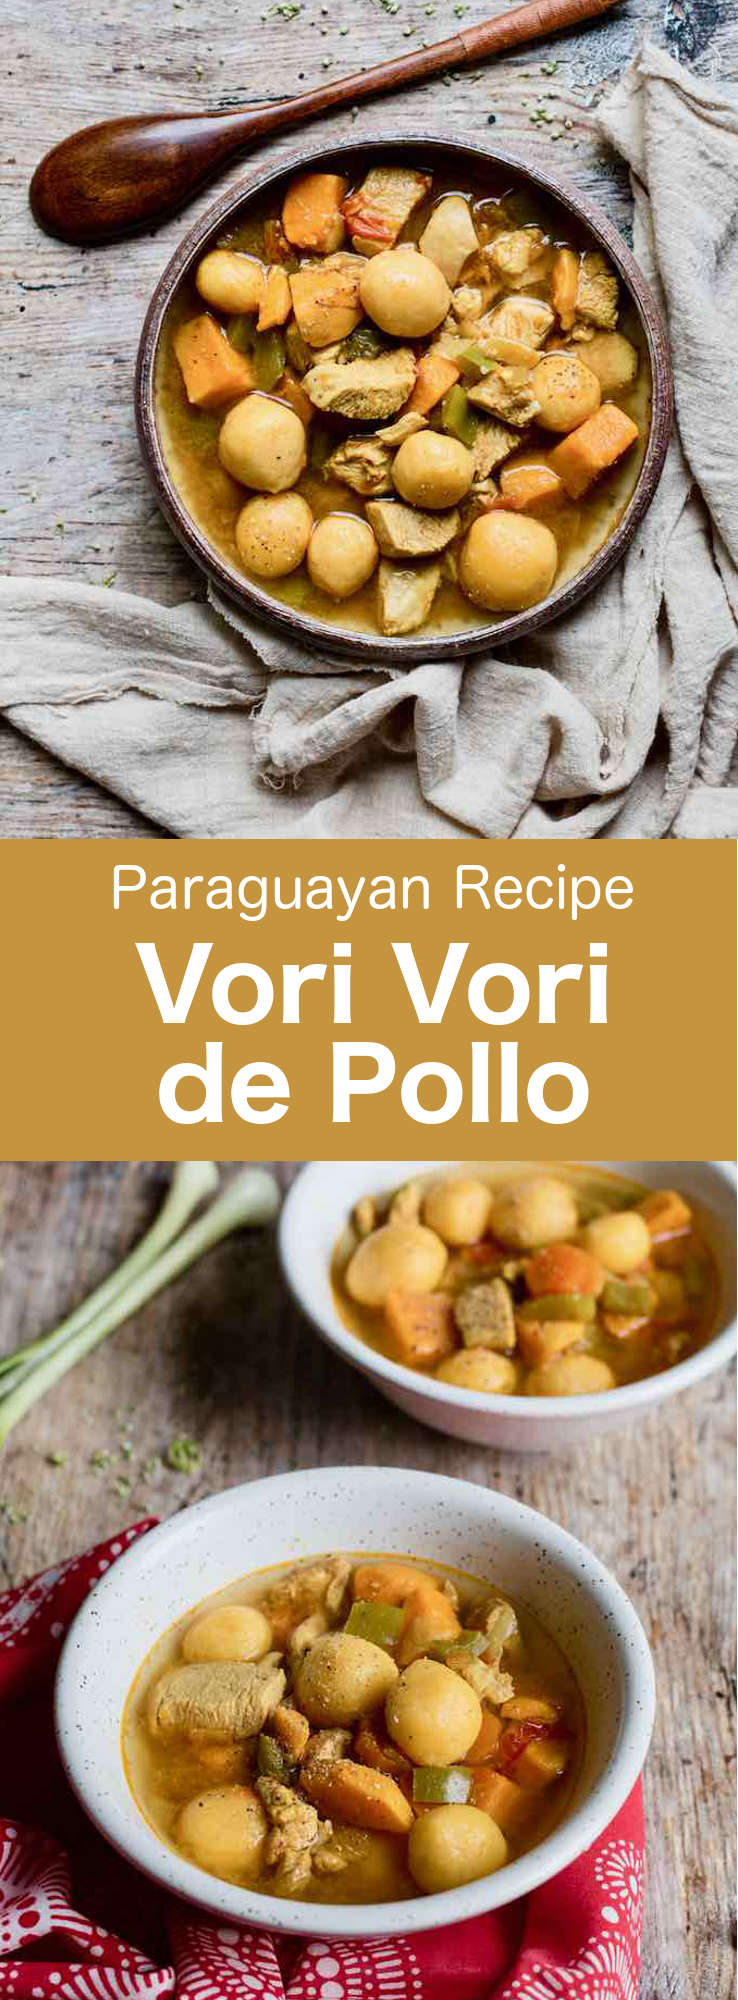 Vori vori de pollo is a delicious heart thick chicken soup with cornmeal and cheese balls that is traditionally served during the cold months in Paraguay. #Paraguay #ParaguayanCuisine #ParaguayanRecipe #LatinAmericanCuisine #LatinAmericanRecipe #SouthAmericanCuisine #SouthAmericanRecipe #WorldFlavors #196flavors